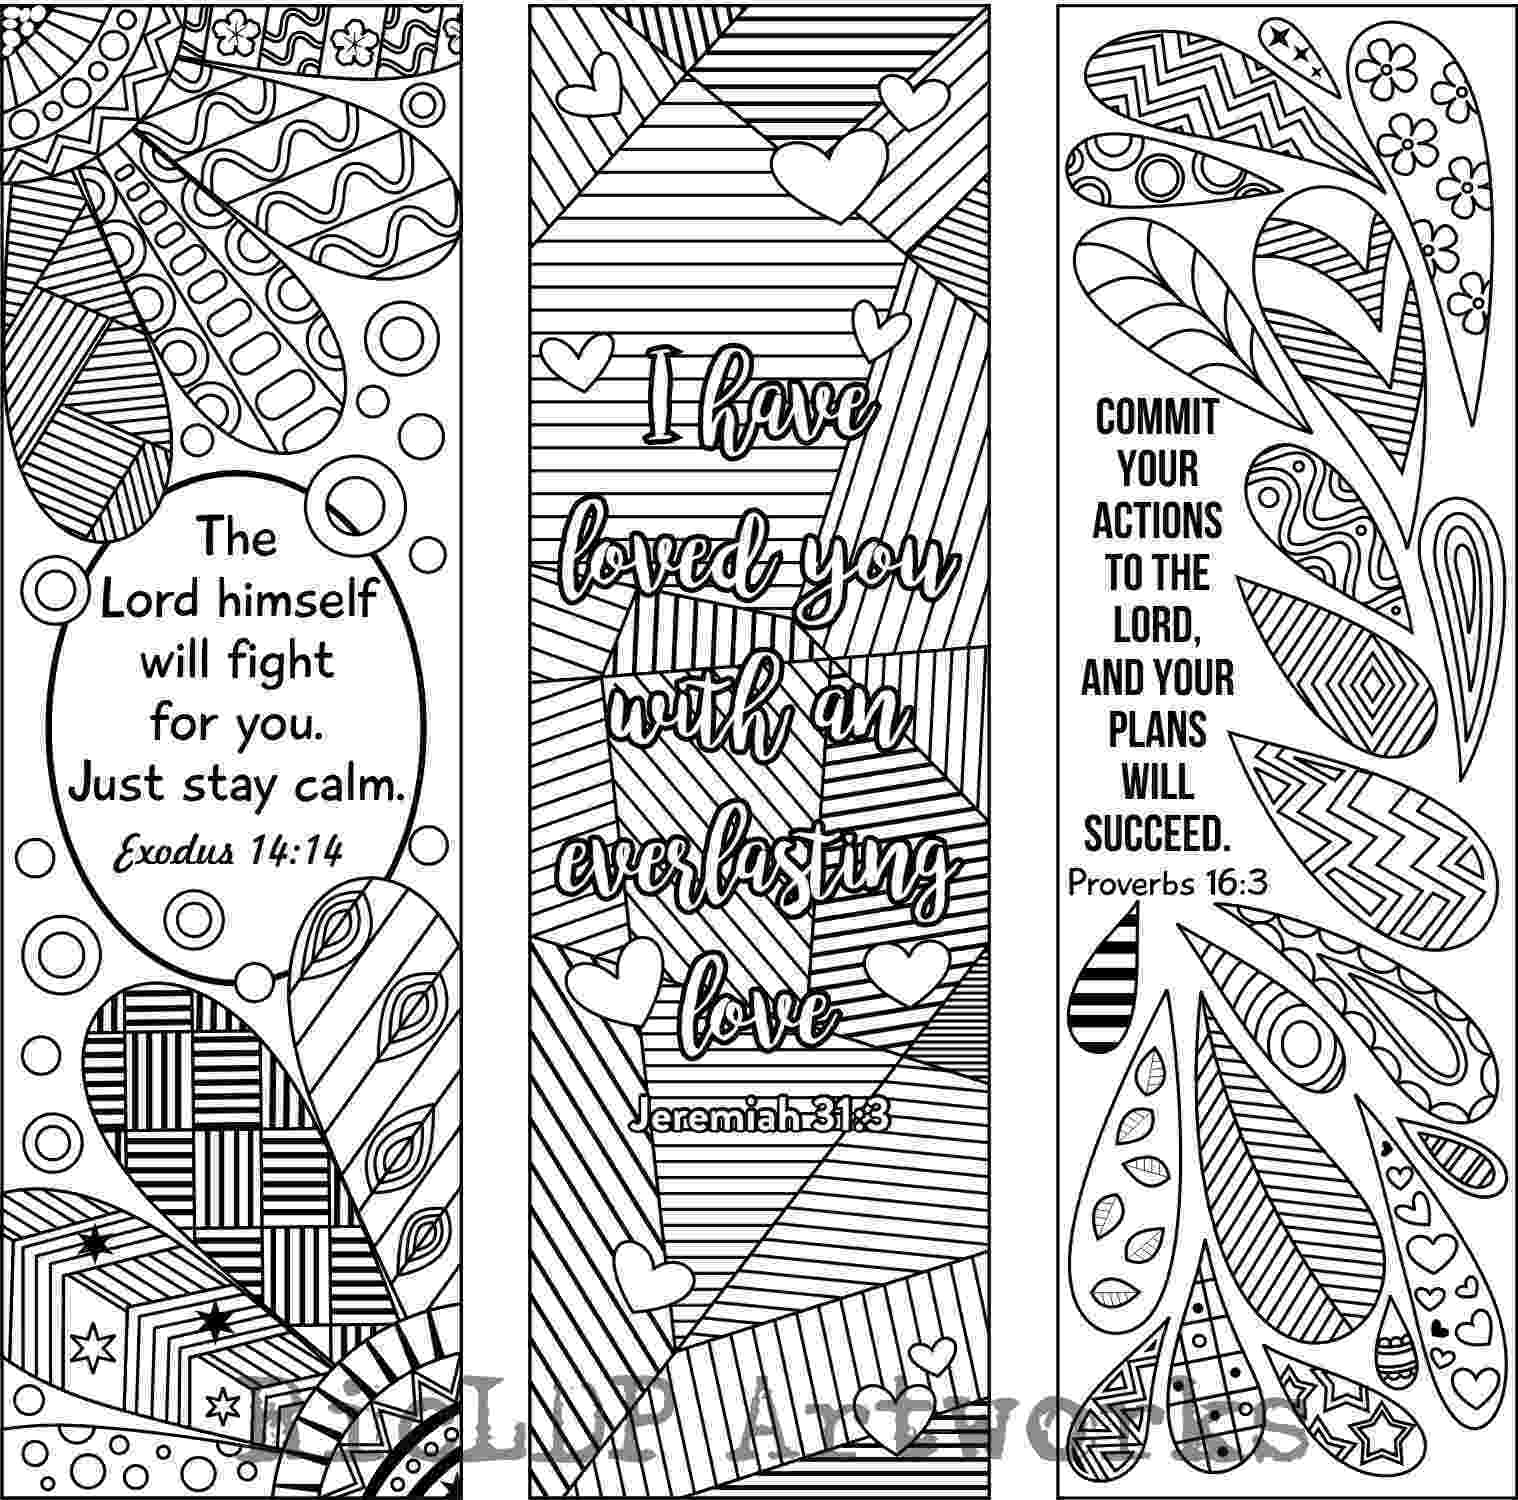 bookmarks coloring sheets set of 8 coloring bookmarks with quotes about books and etsy bookmarks sheets coloring